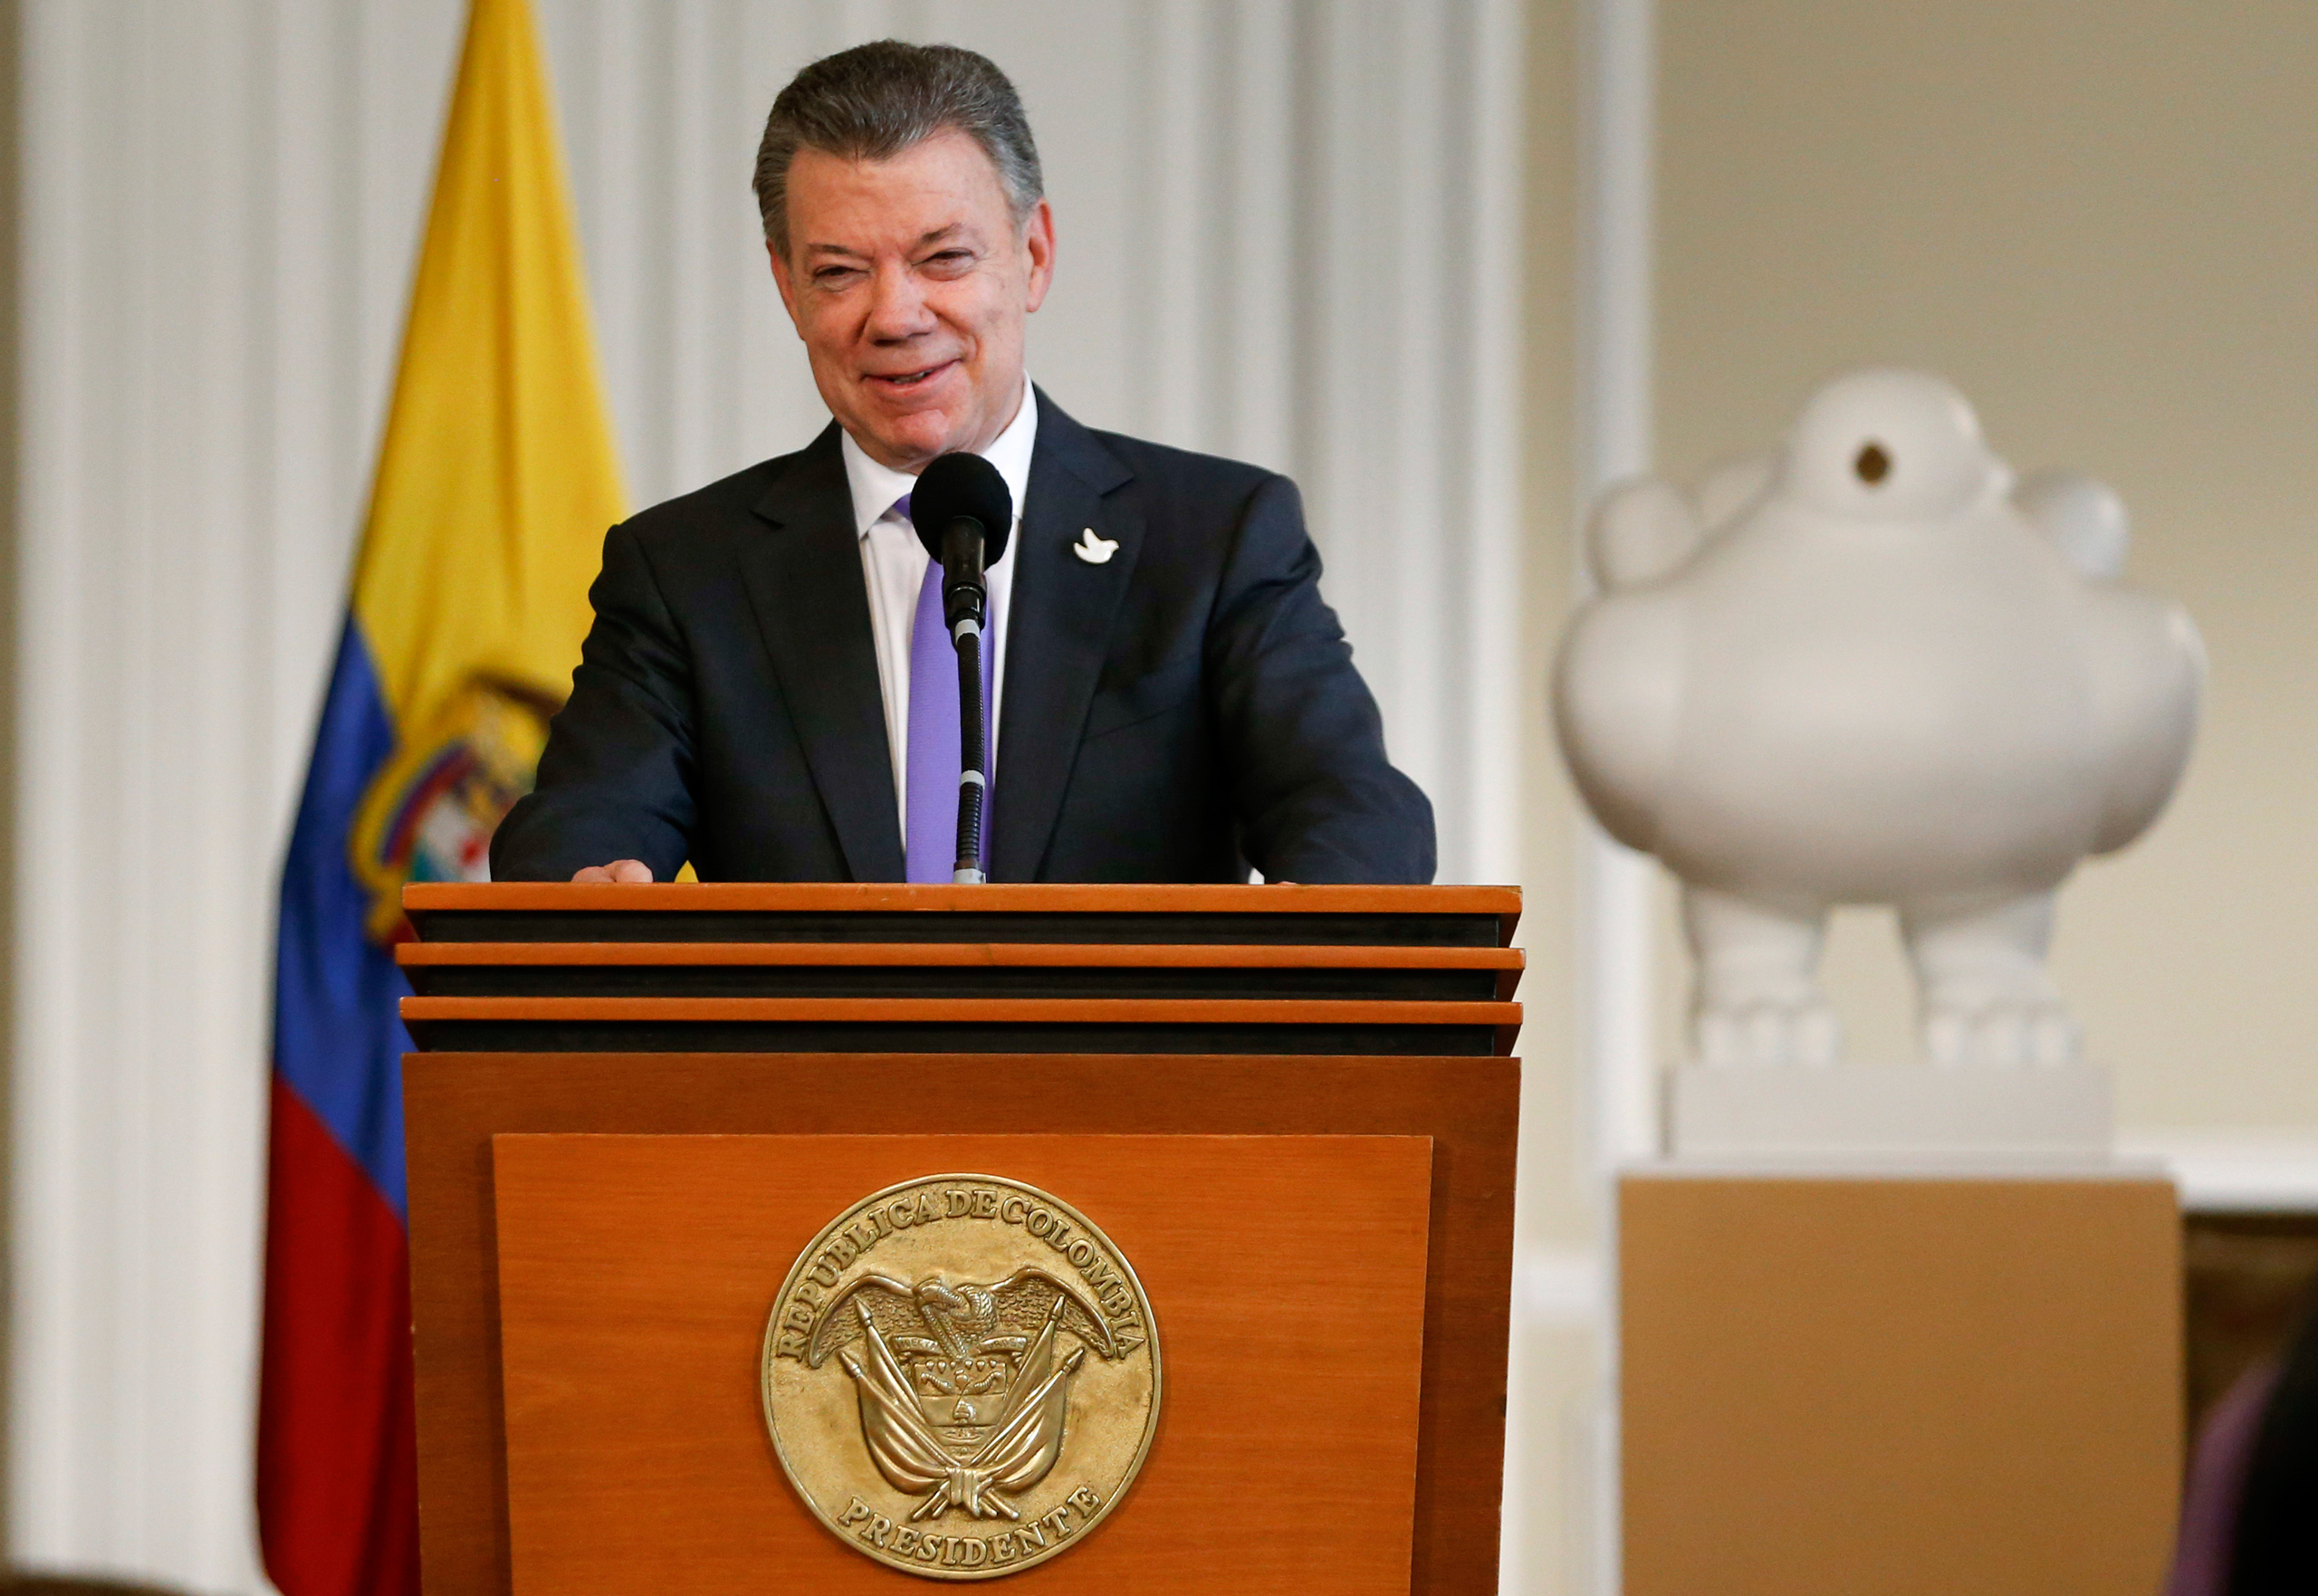 Colombia's President Juan Manuel Santos speaks to supporters of the peace deal he signed with rebels of the Revolutionary Armed Forces of Colombia, FARC, at the presidential palace in Bogota on Oct. 7, 2016.